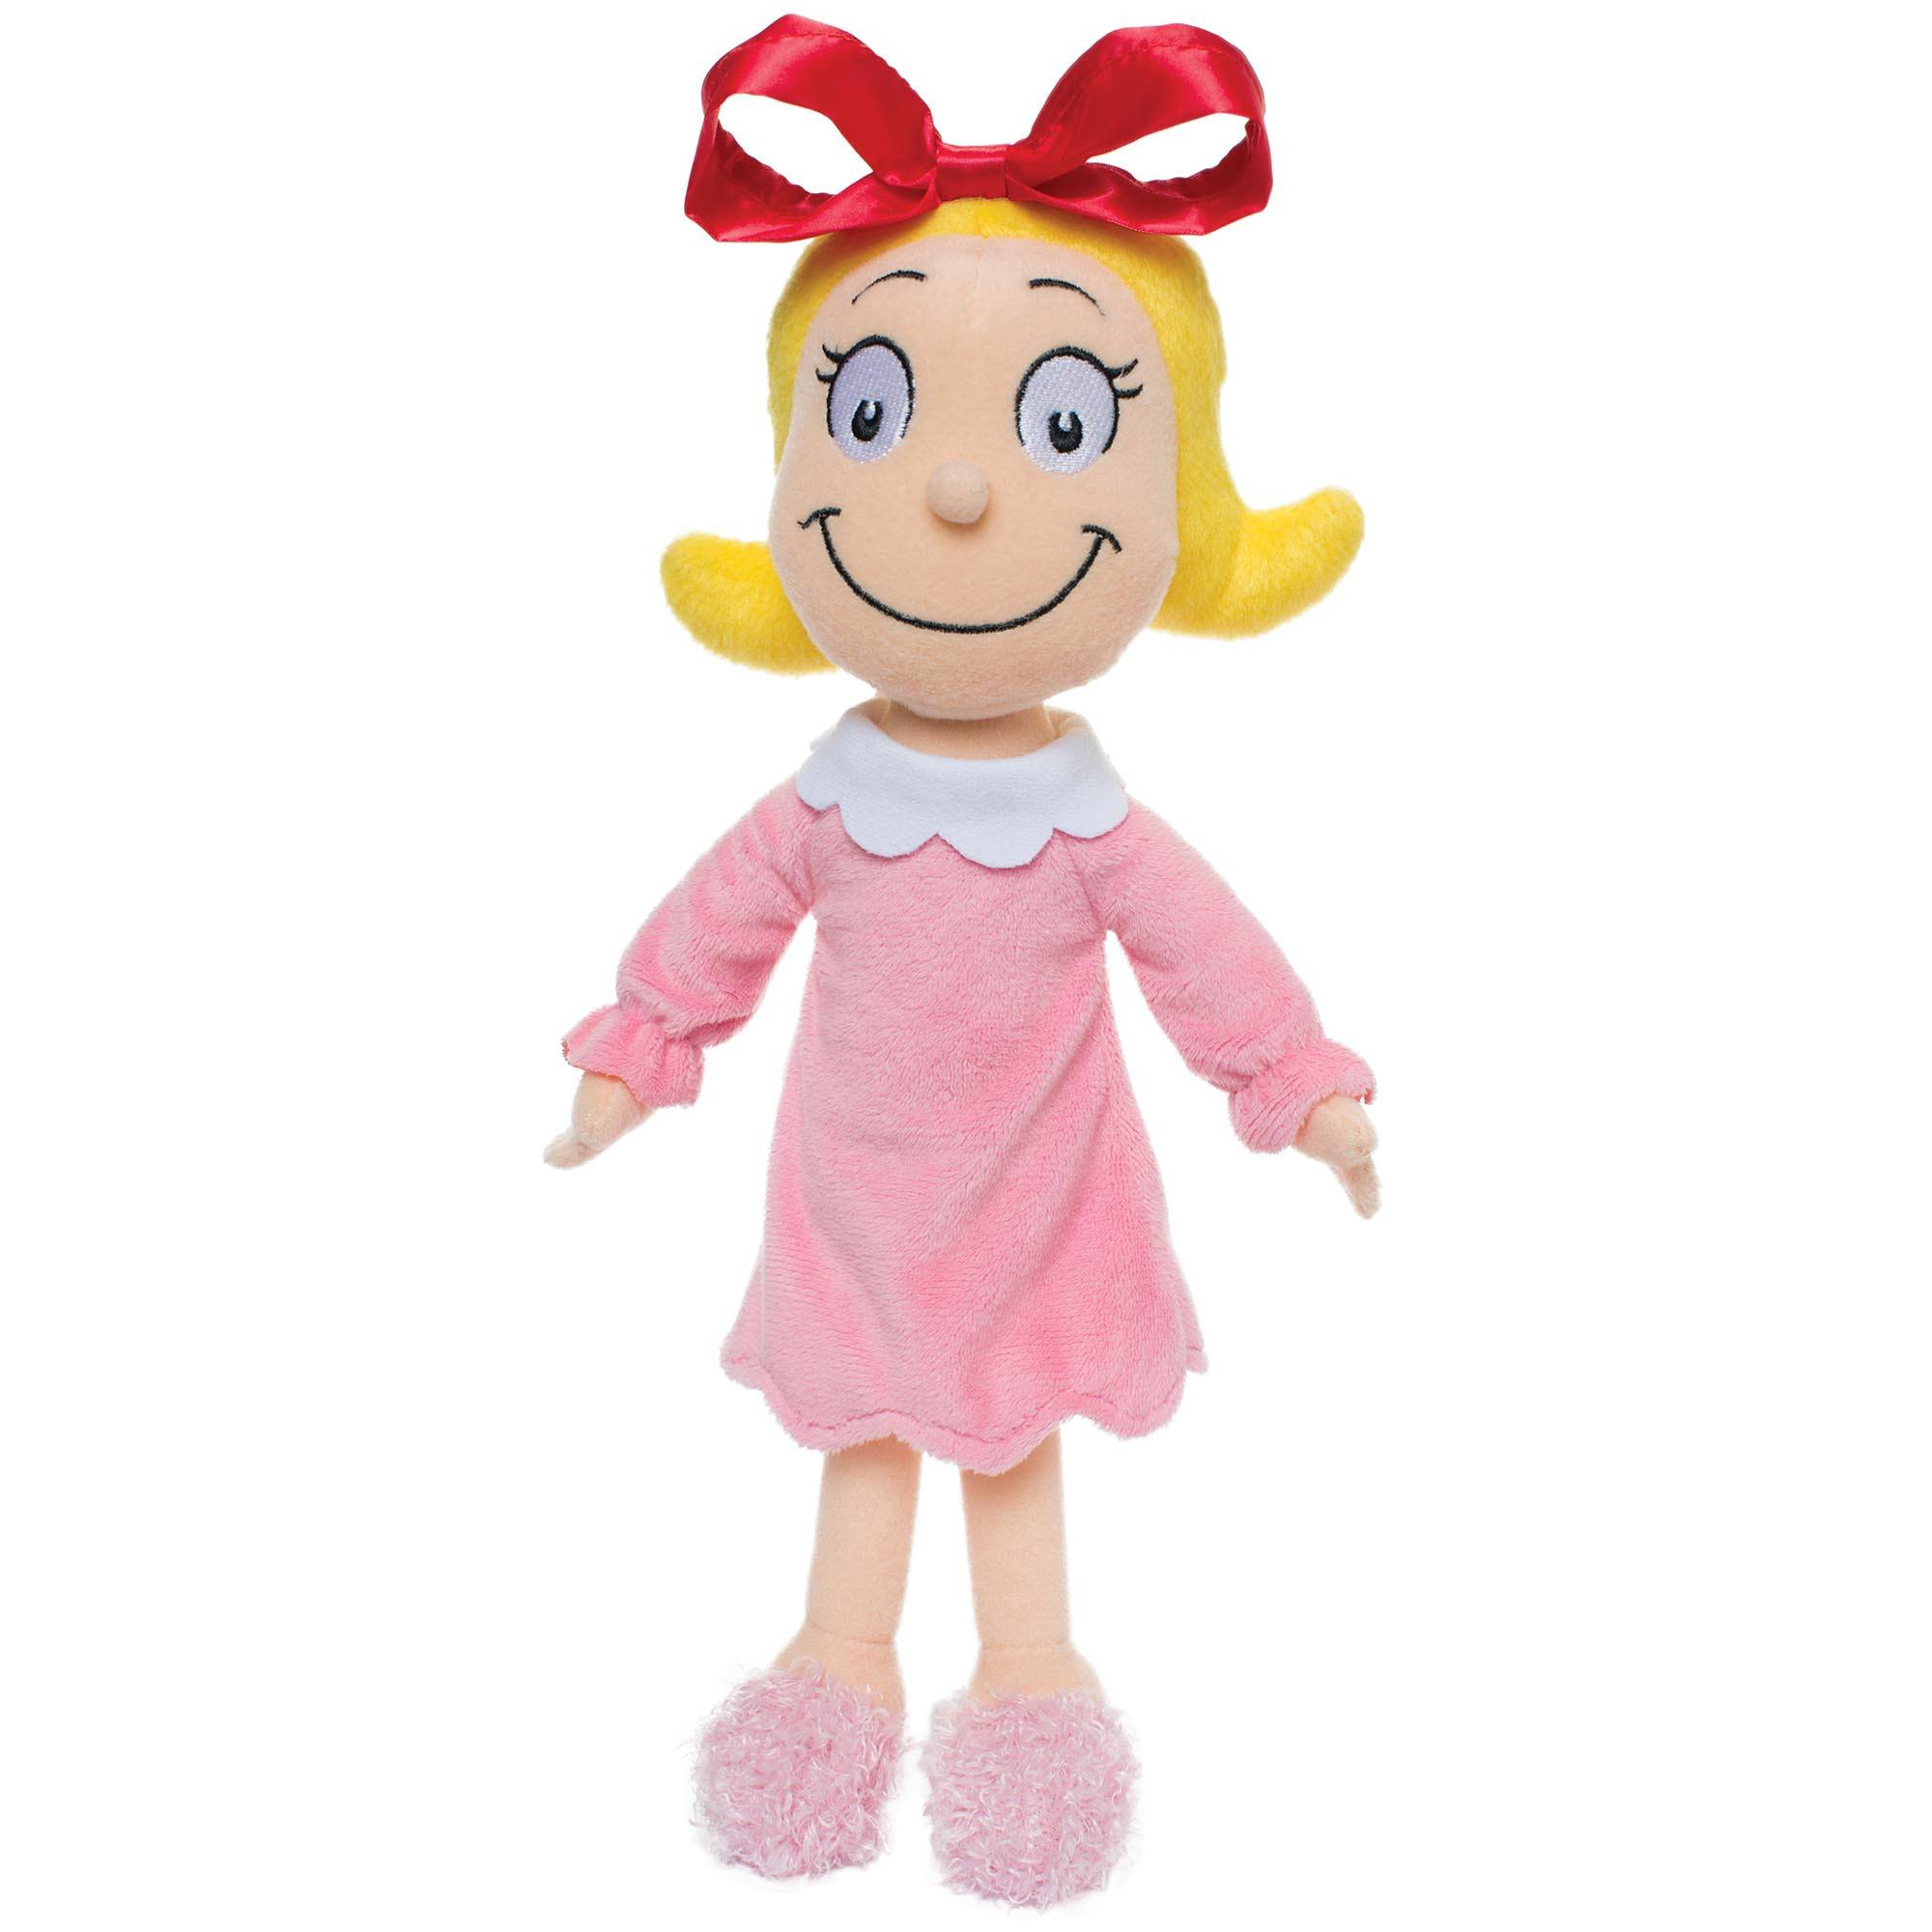 Dr Seuss Cindy Lou Who Plush Toy Small By Manhattan Toy